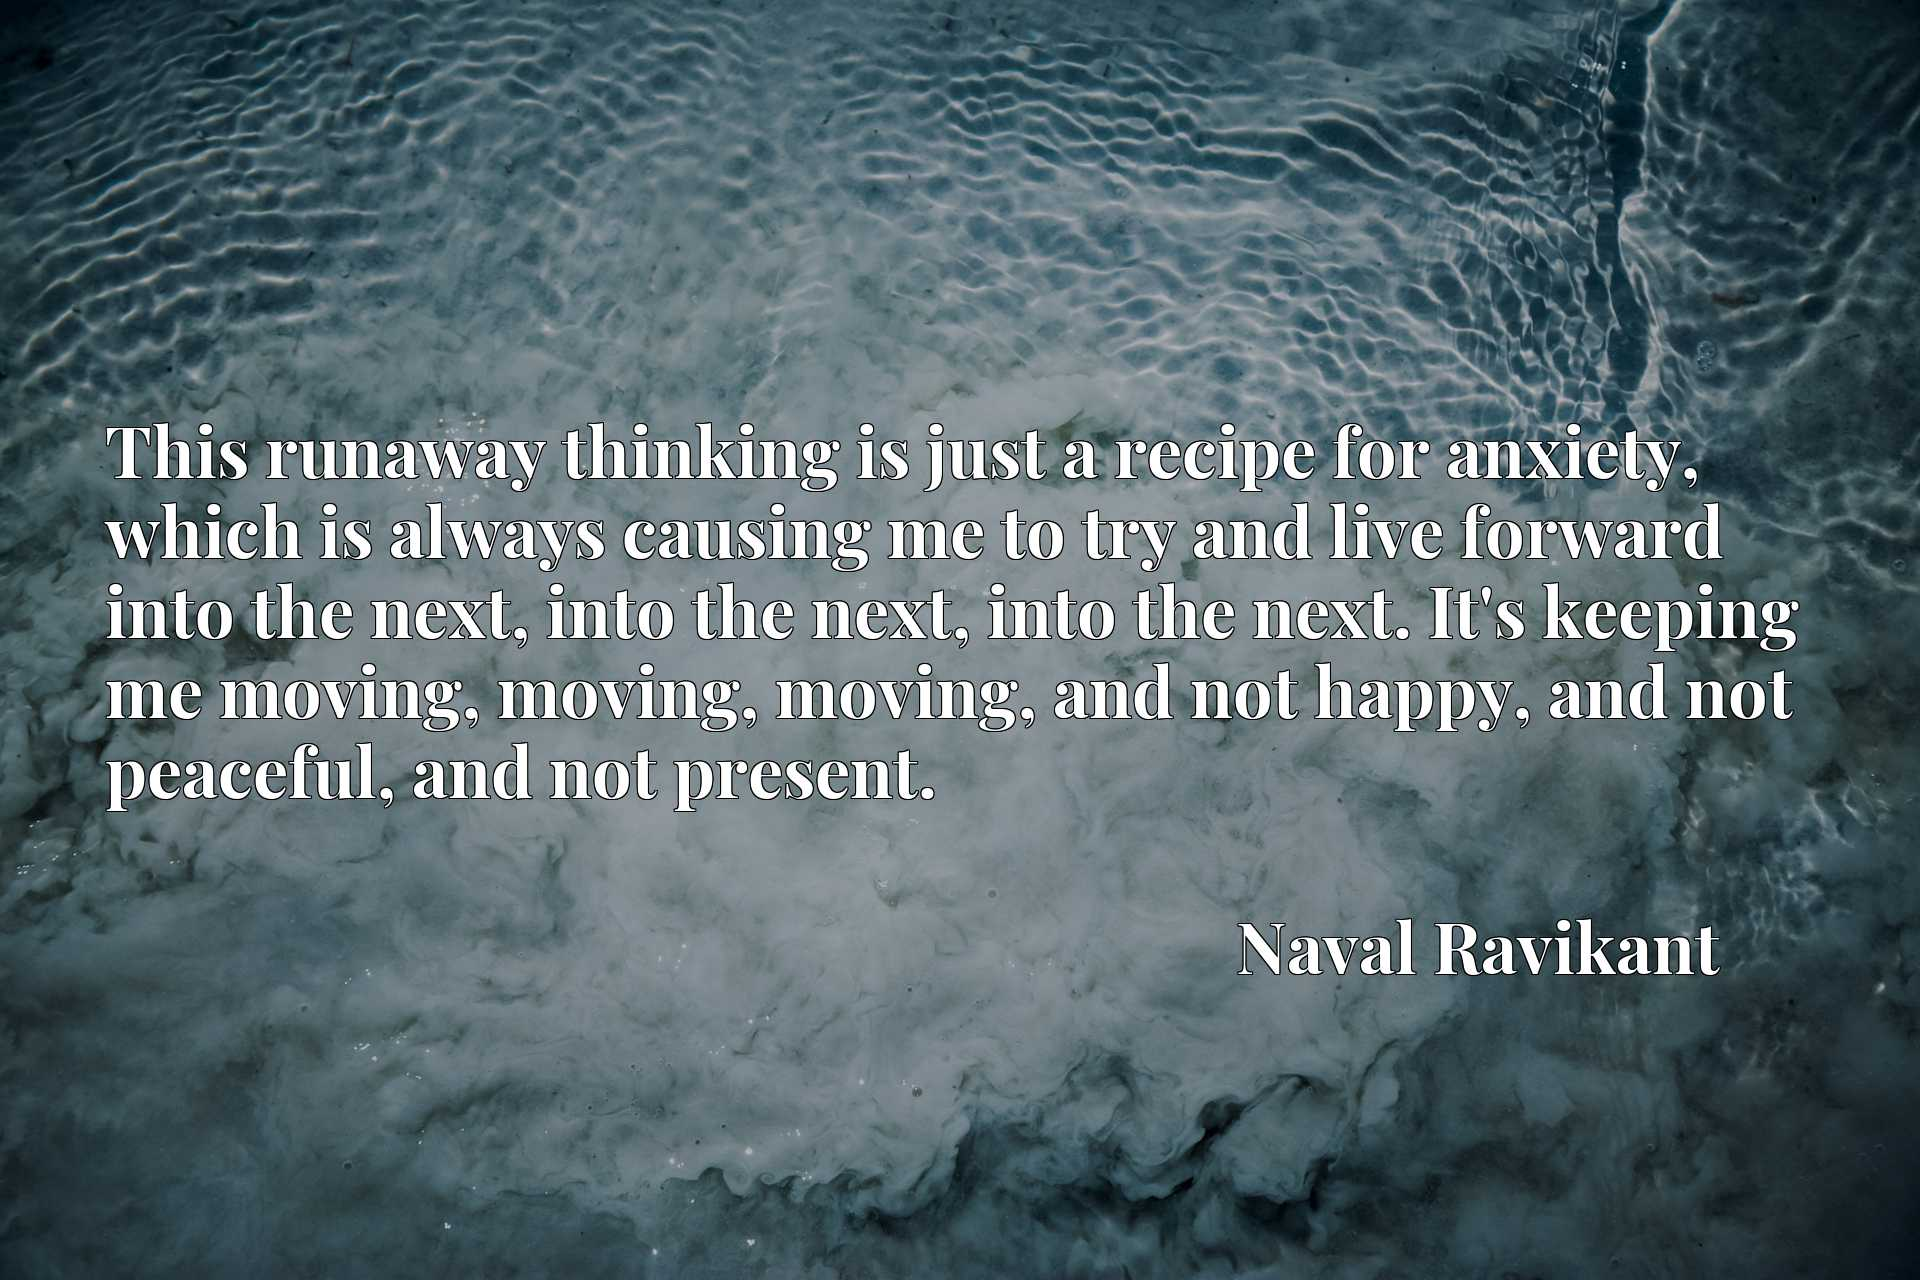 This runaway thinking is just a recipe for anxiety, which is always causing me to try and live forward into the next, into the next, into the next. It's keeping me moving, moving, moving, and not happy, and not peaceful, and not present.